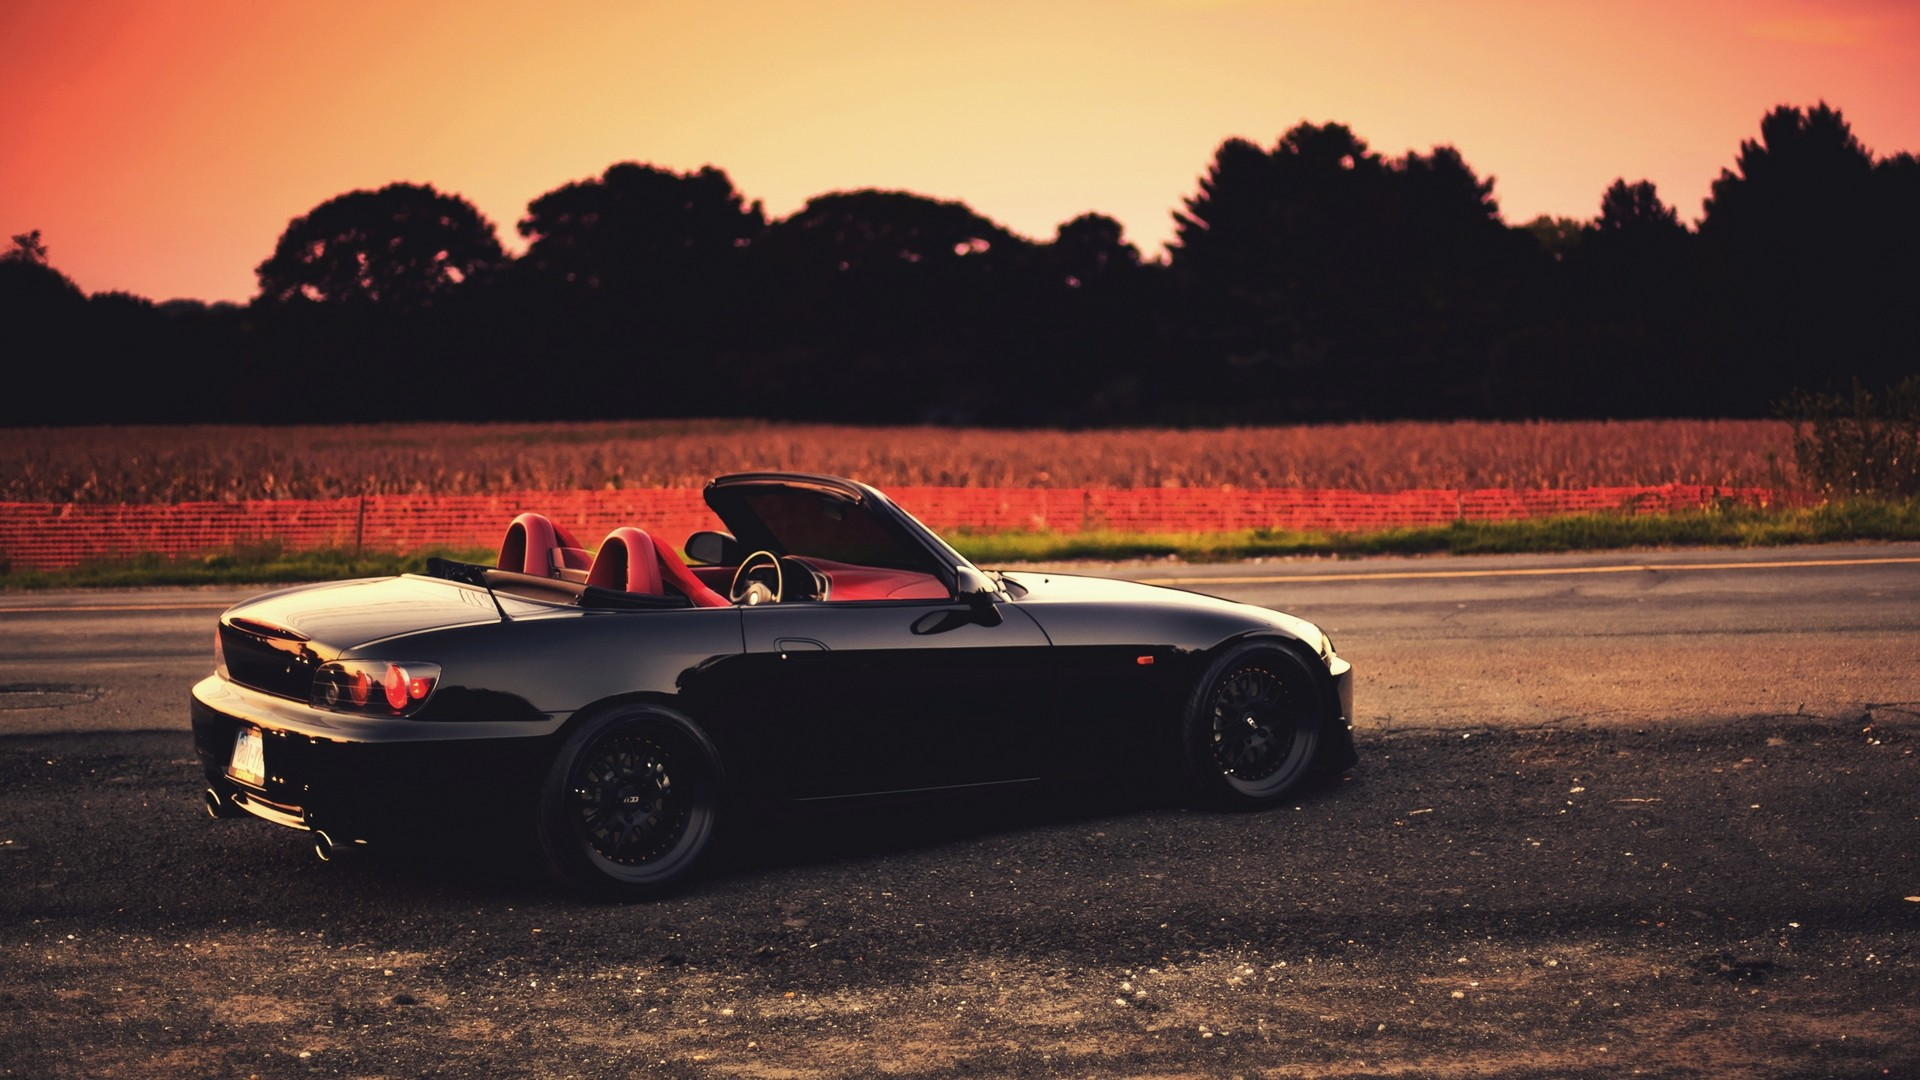 1920x1080 - Honda S2000 Wallpapers 11